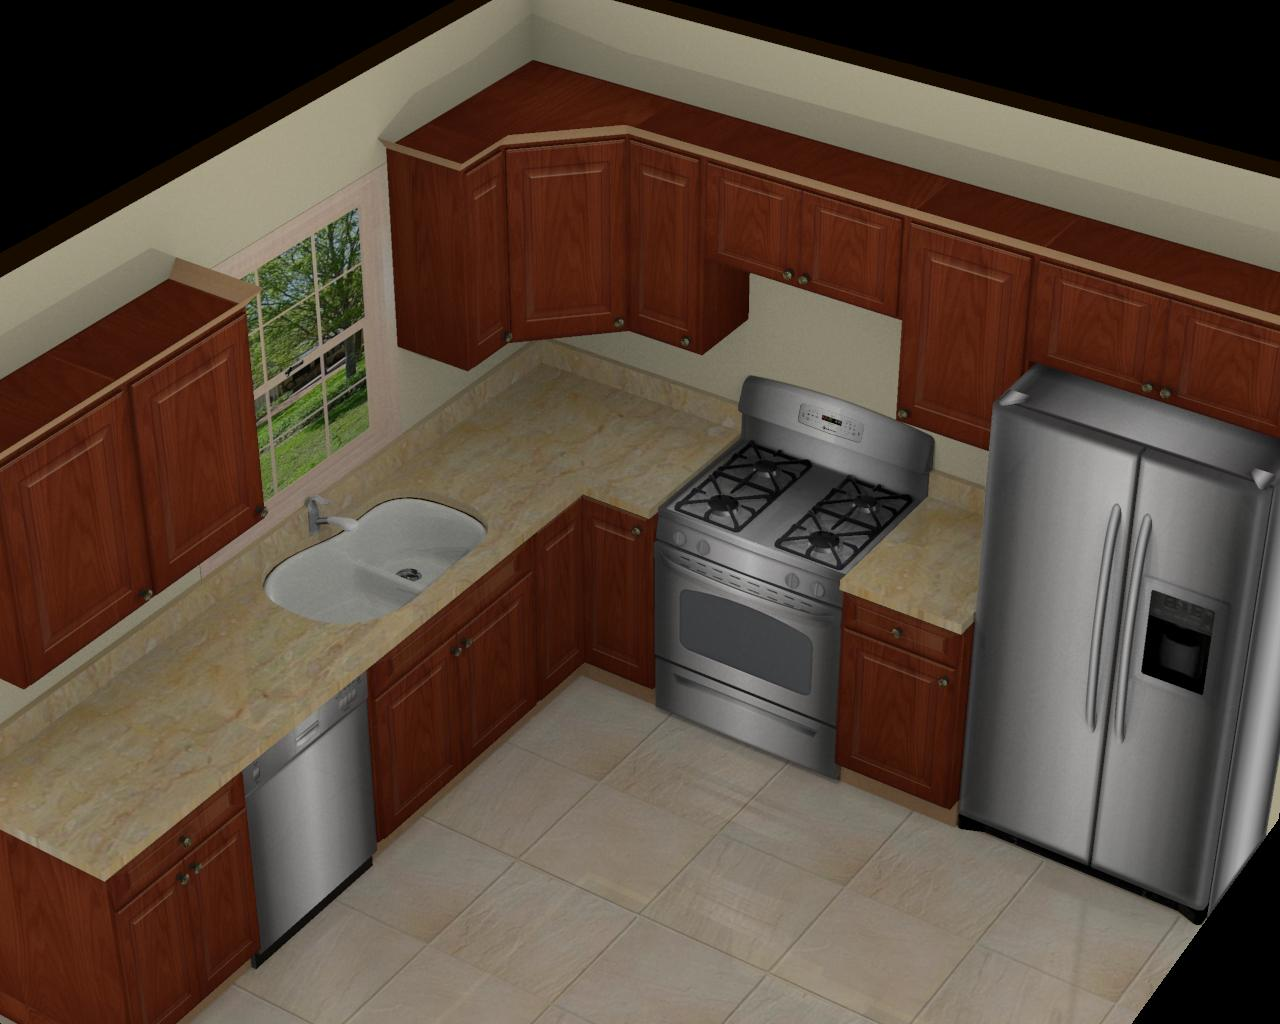 Foundation dezin decor 3d kitchen model design for 3d bathroom planner